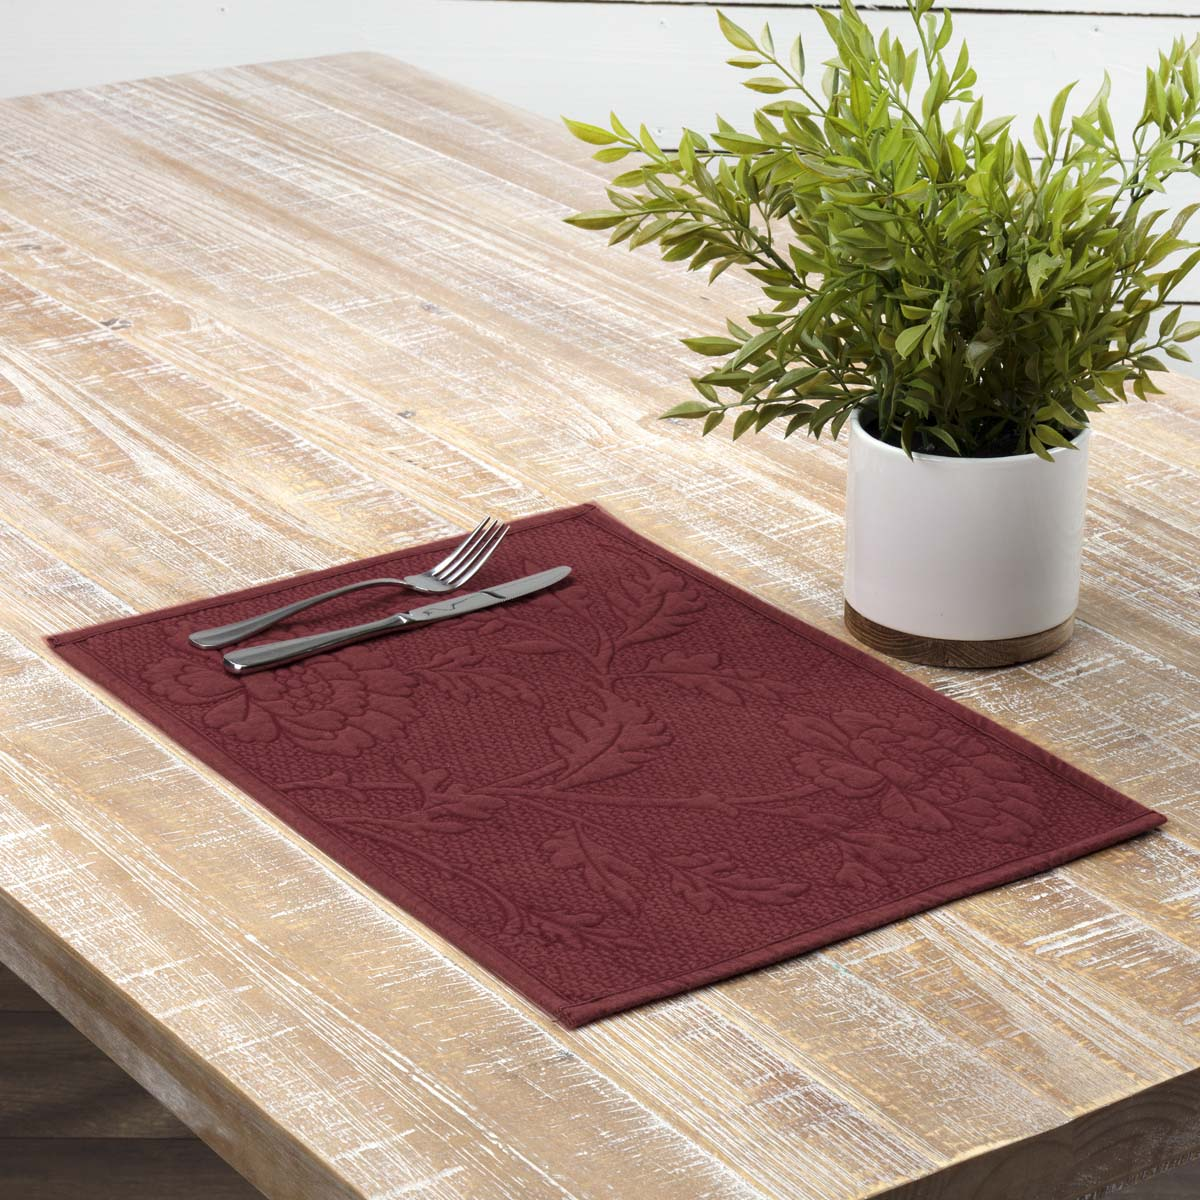 Carly Quilted Placemat Set